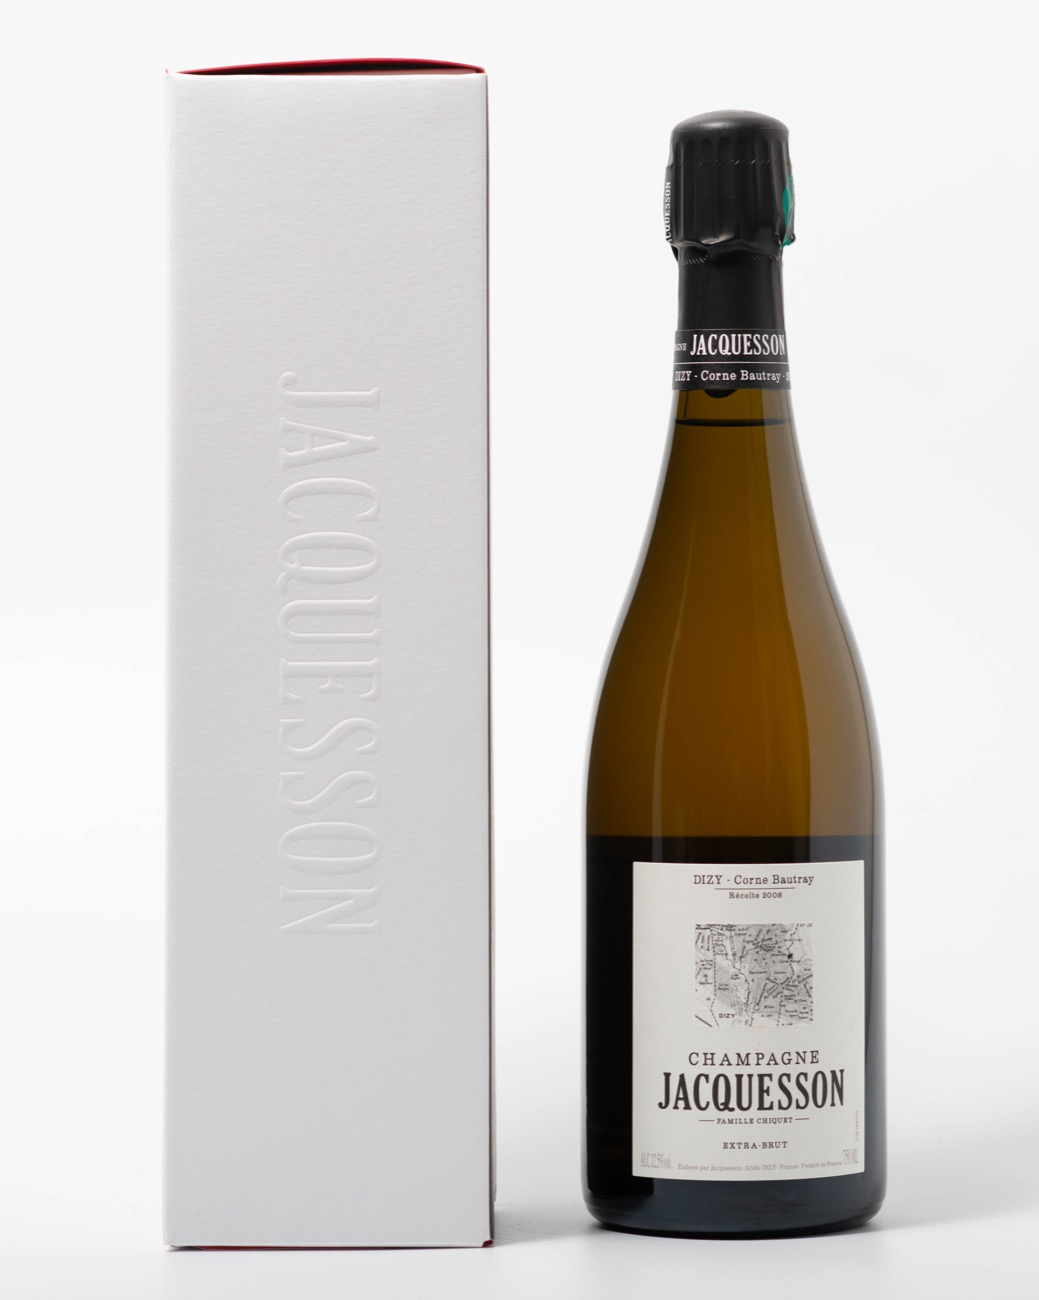 Jacquesson sizy corne bautray 2008 5